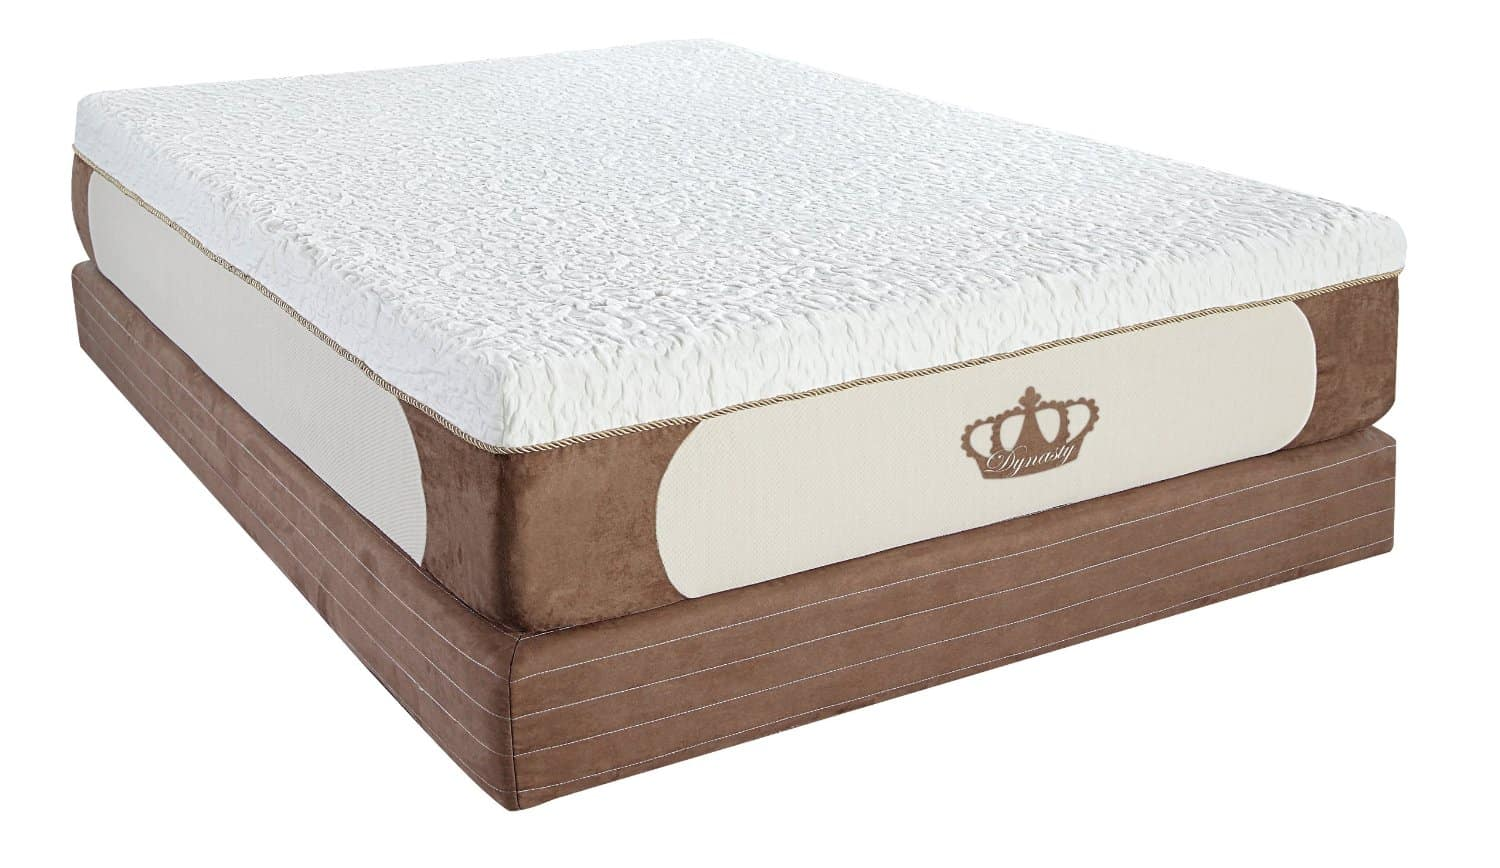 dynastymattress cool review foam gel inch memory dynasty breeze mattress